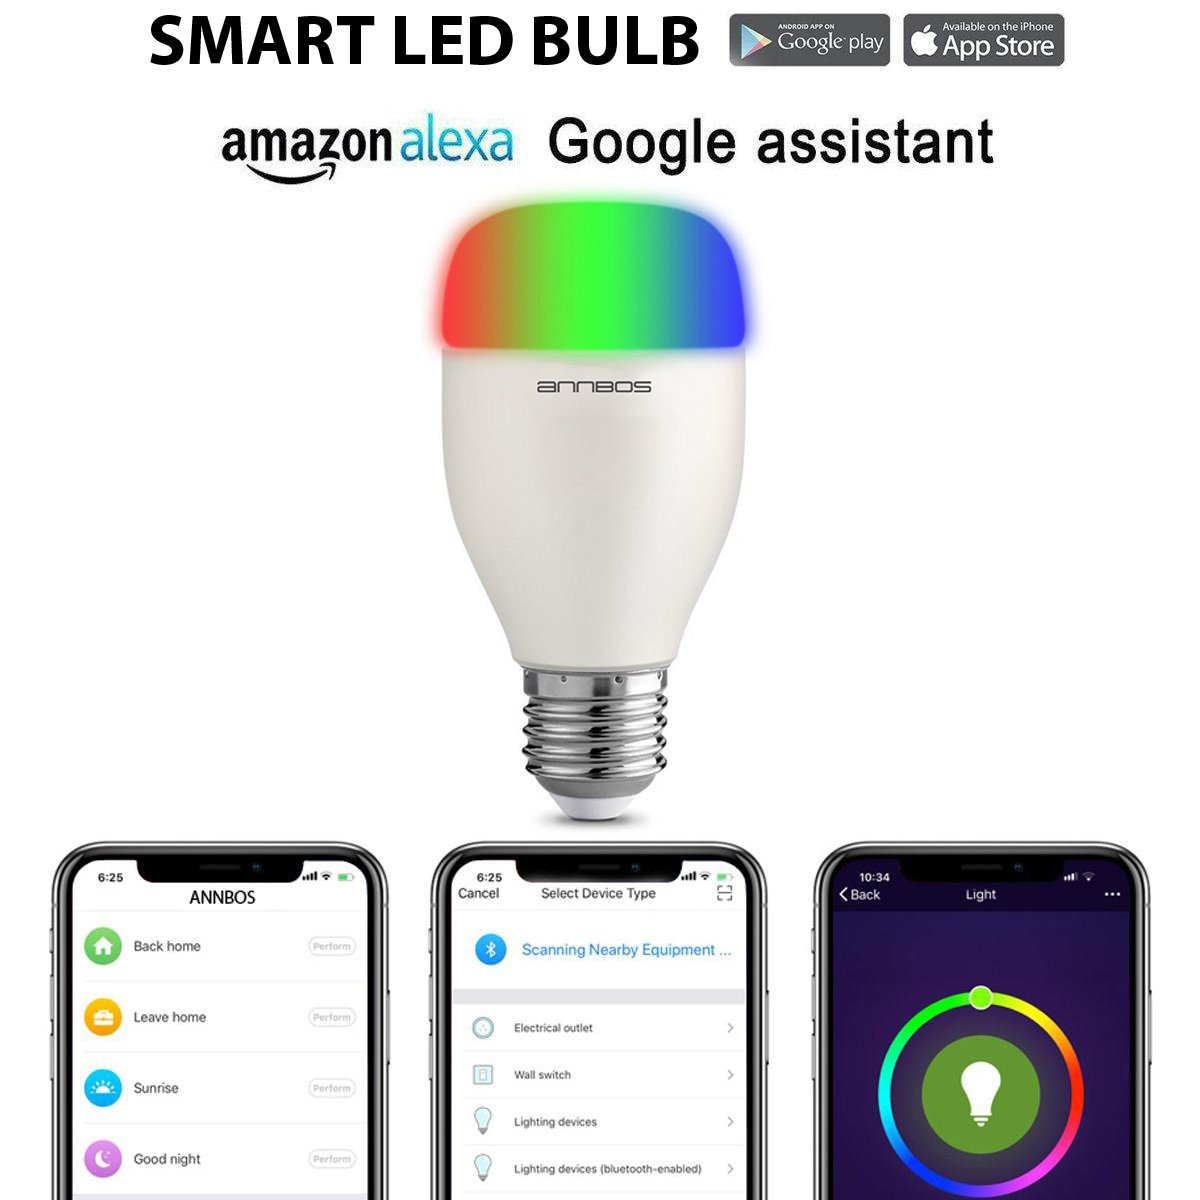 ANNBOS Smart led light bulb Wifi Wireless Dimmable Sleeping Wake Up Home, White and Color Ambiance Adjustable, Multicolor 60W Equivalent Smartphone Controlled Day & Night Light Timing Remote Co